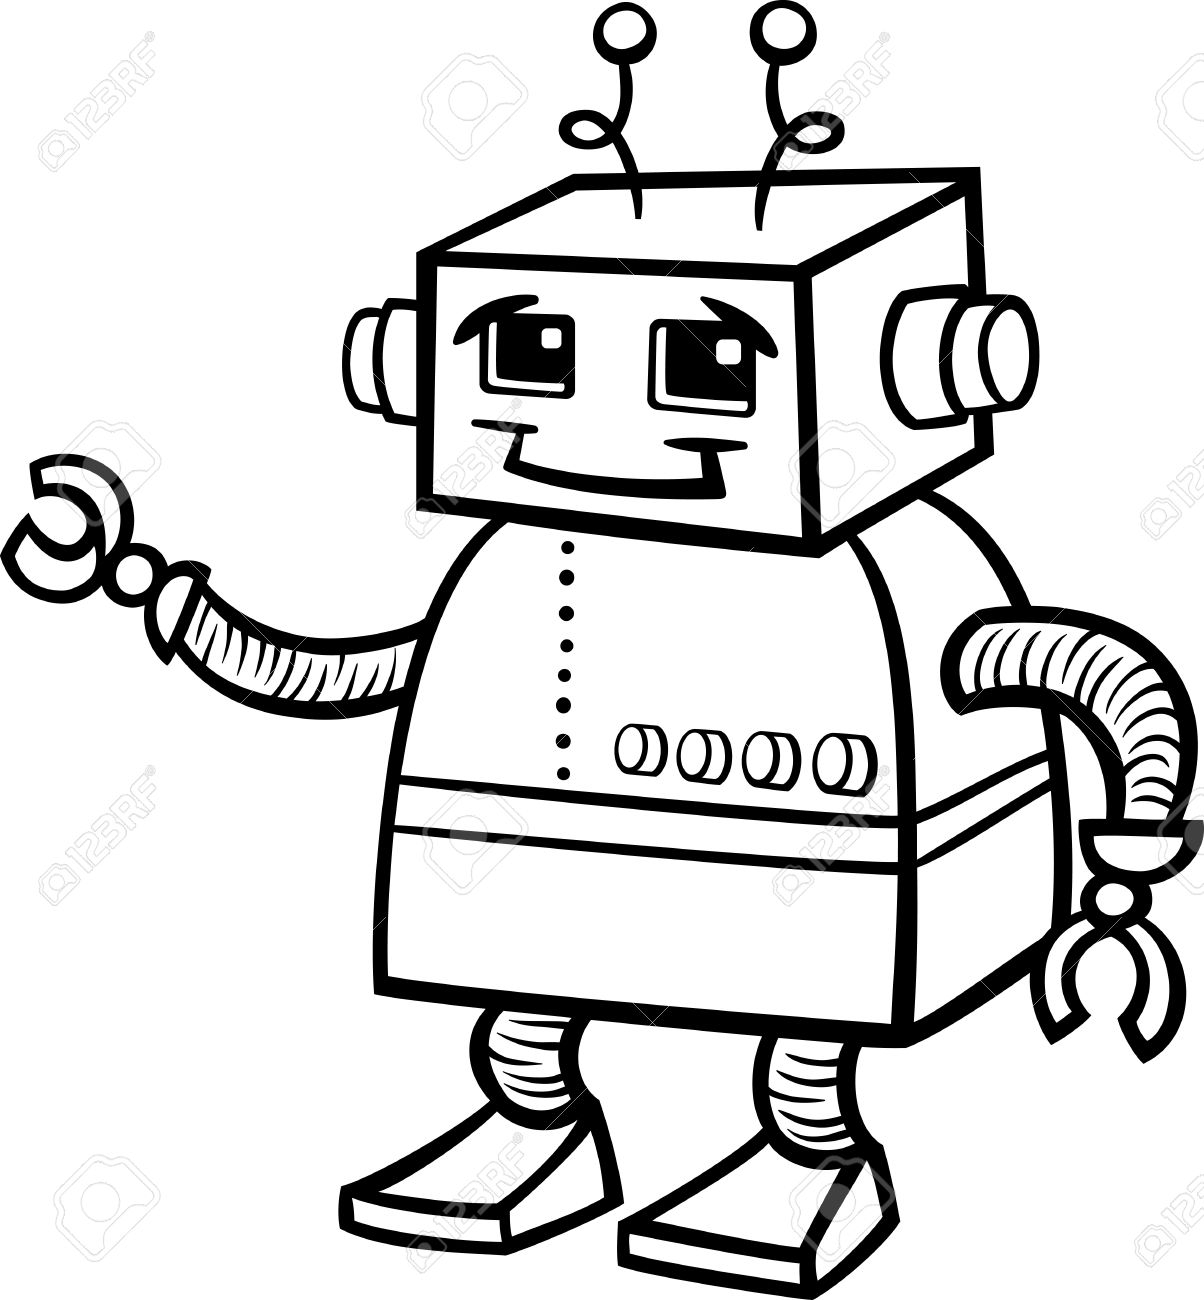 Robot Clipart Black And White.